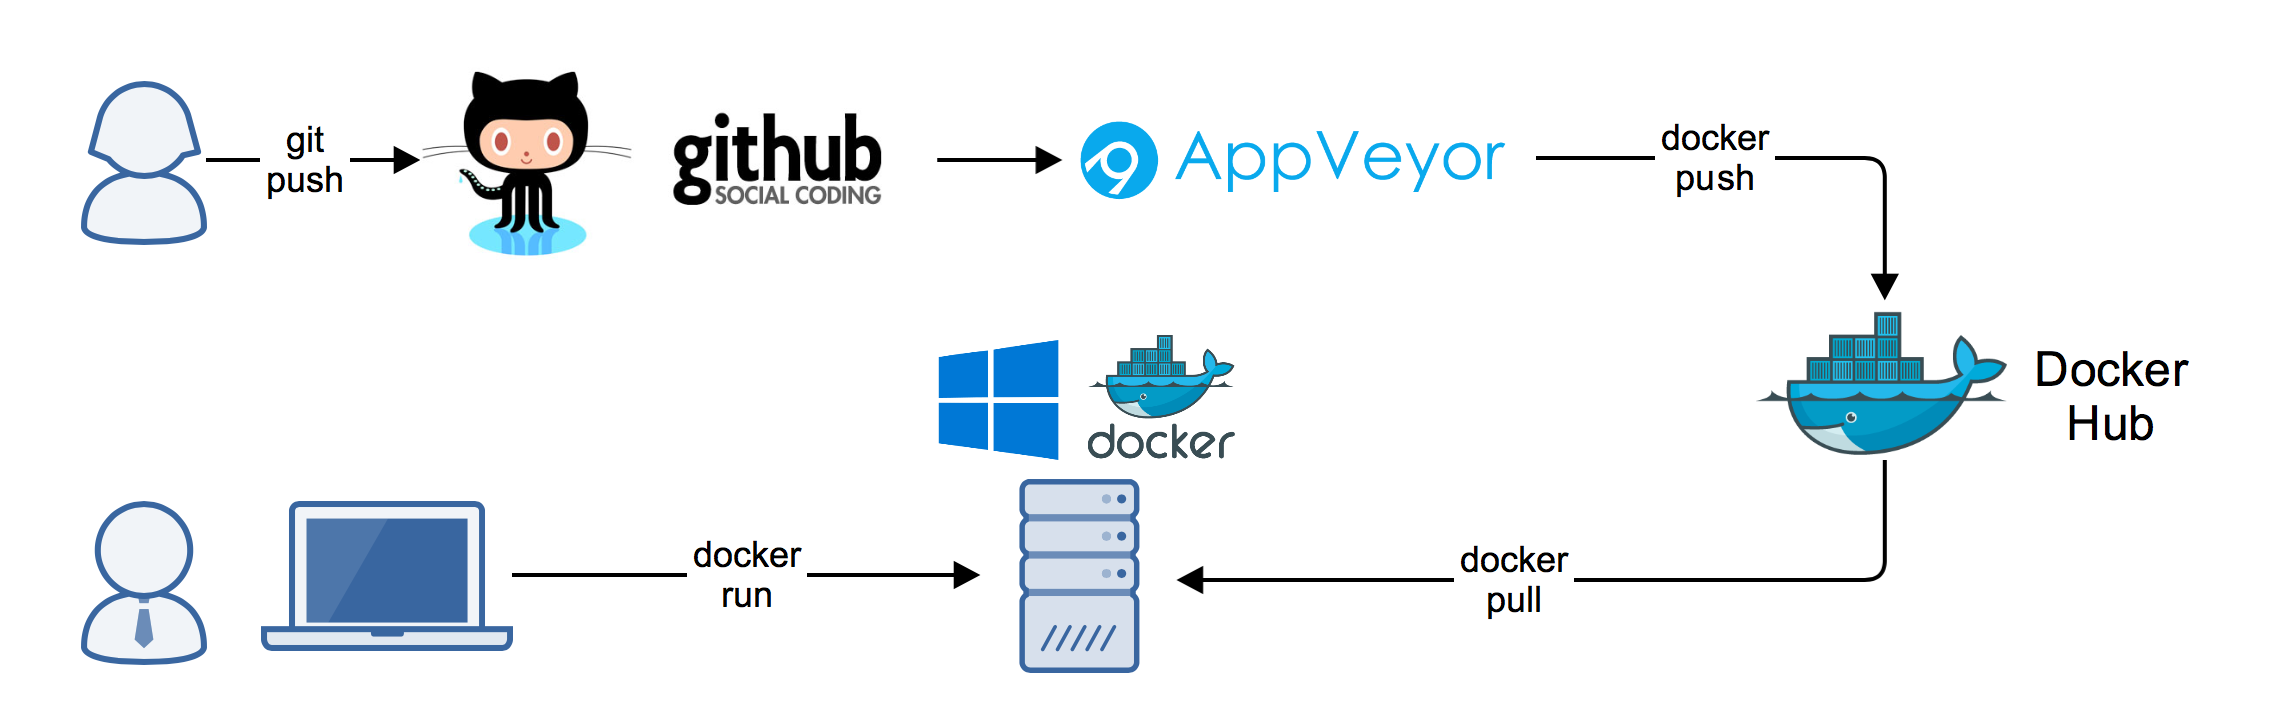 How to Create, Push, & Pull a Docker Image from Docker Hub